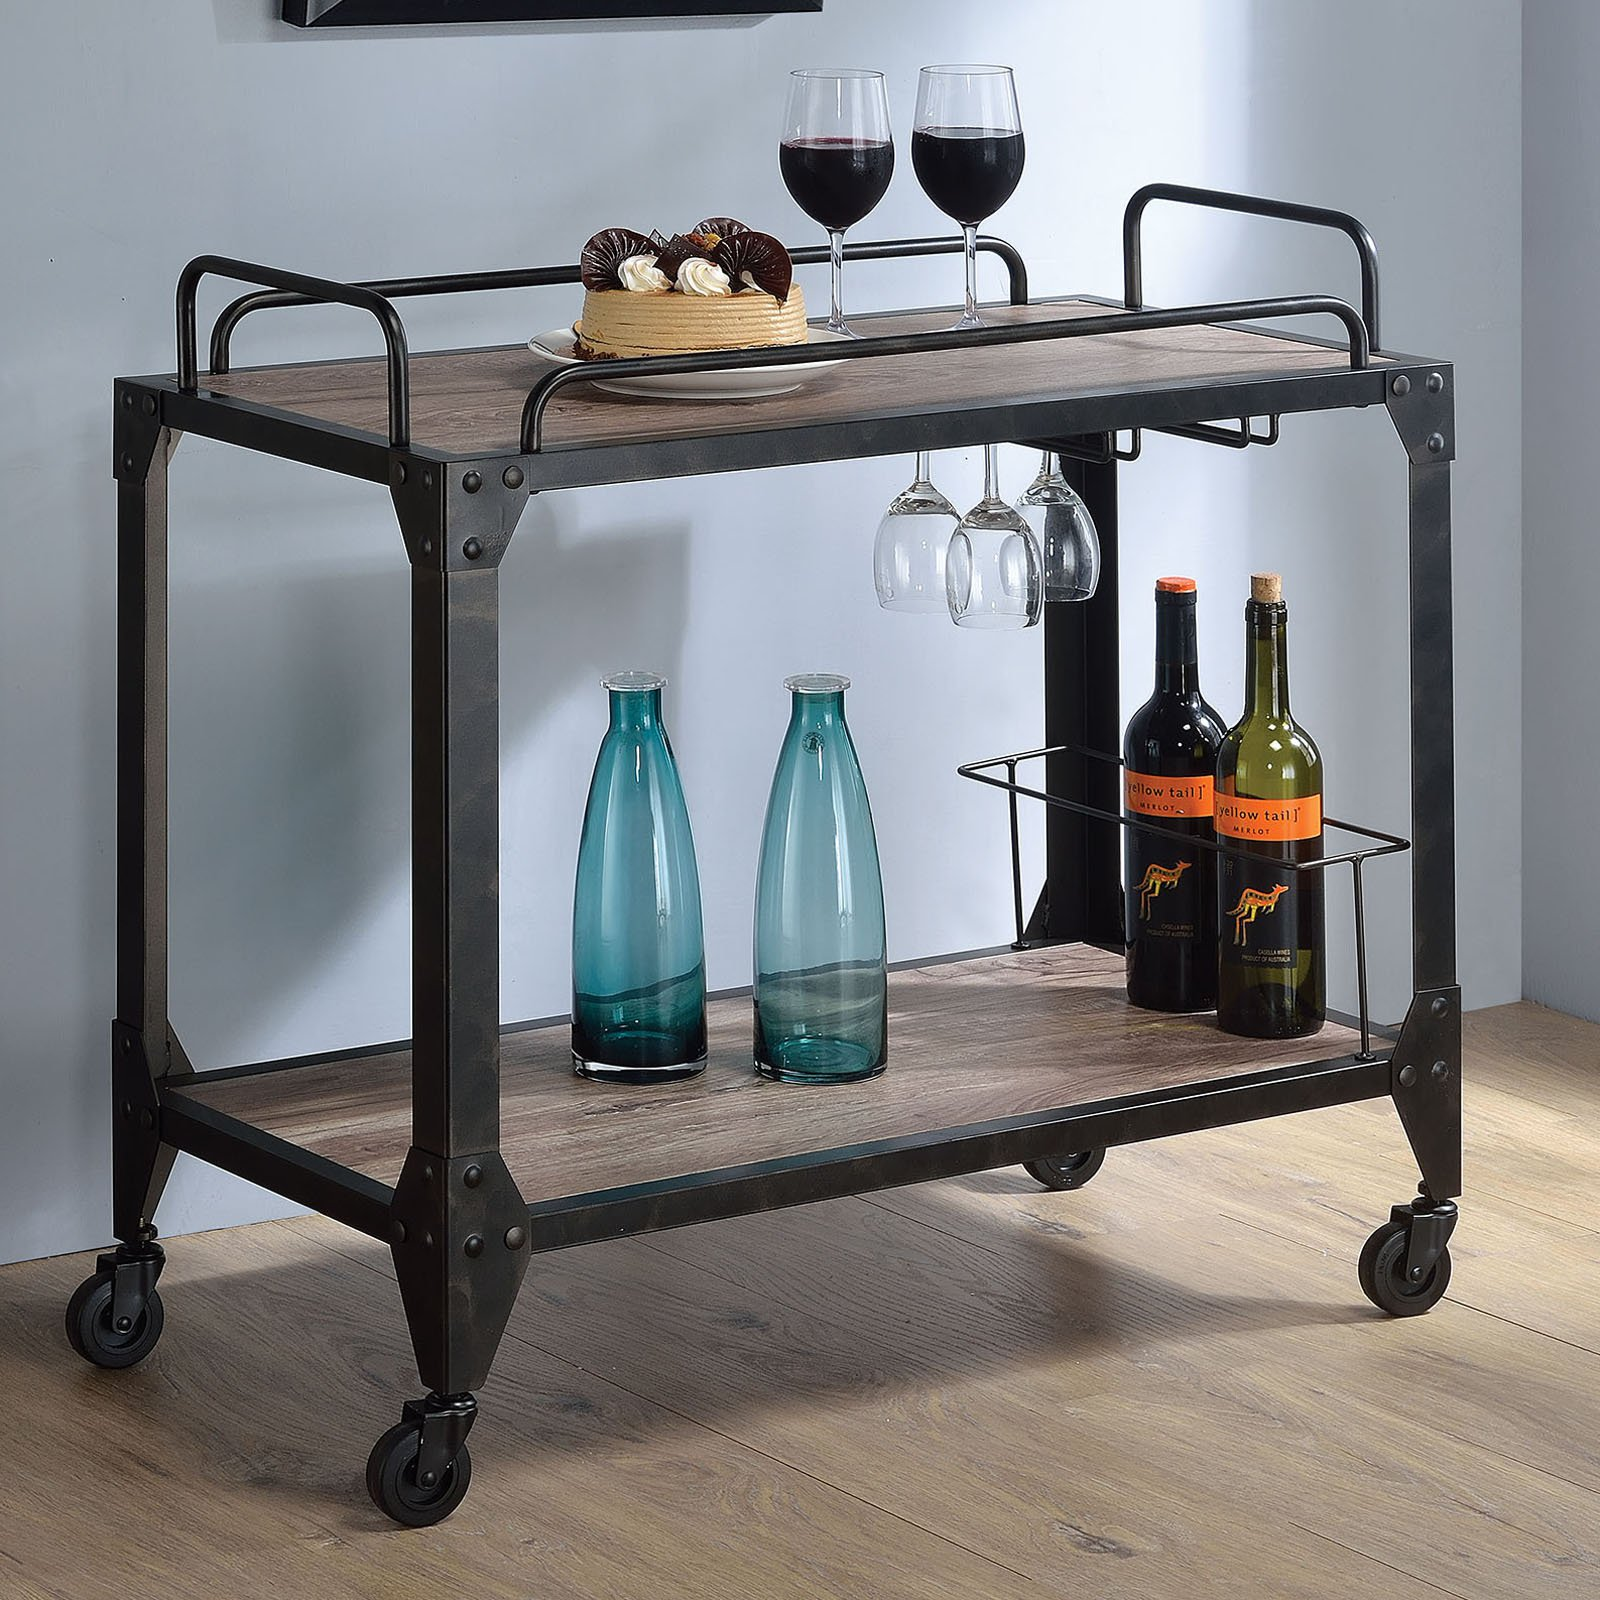 ACME Caitlin Serving Cart, Rustic Oak and Black by Acme Furniture